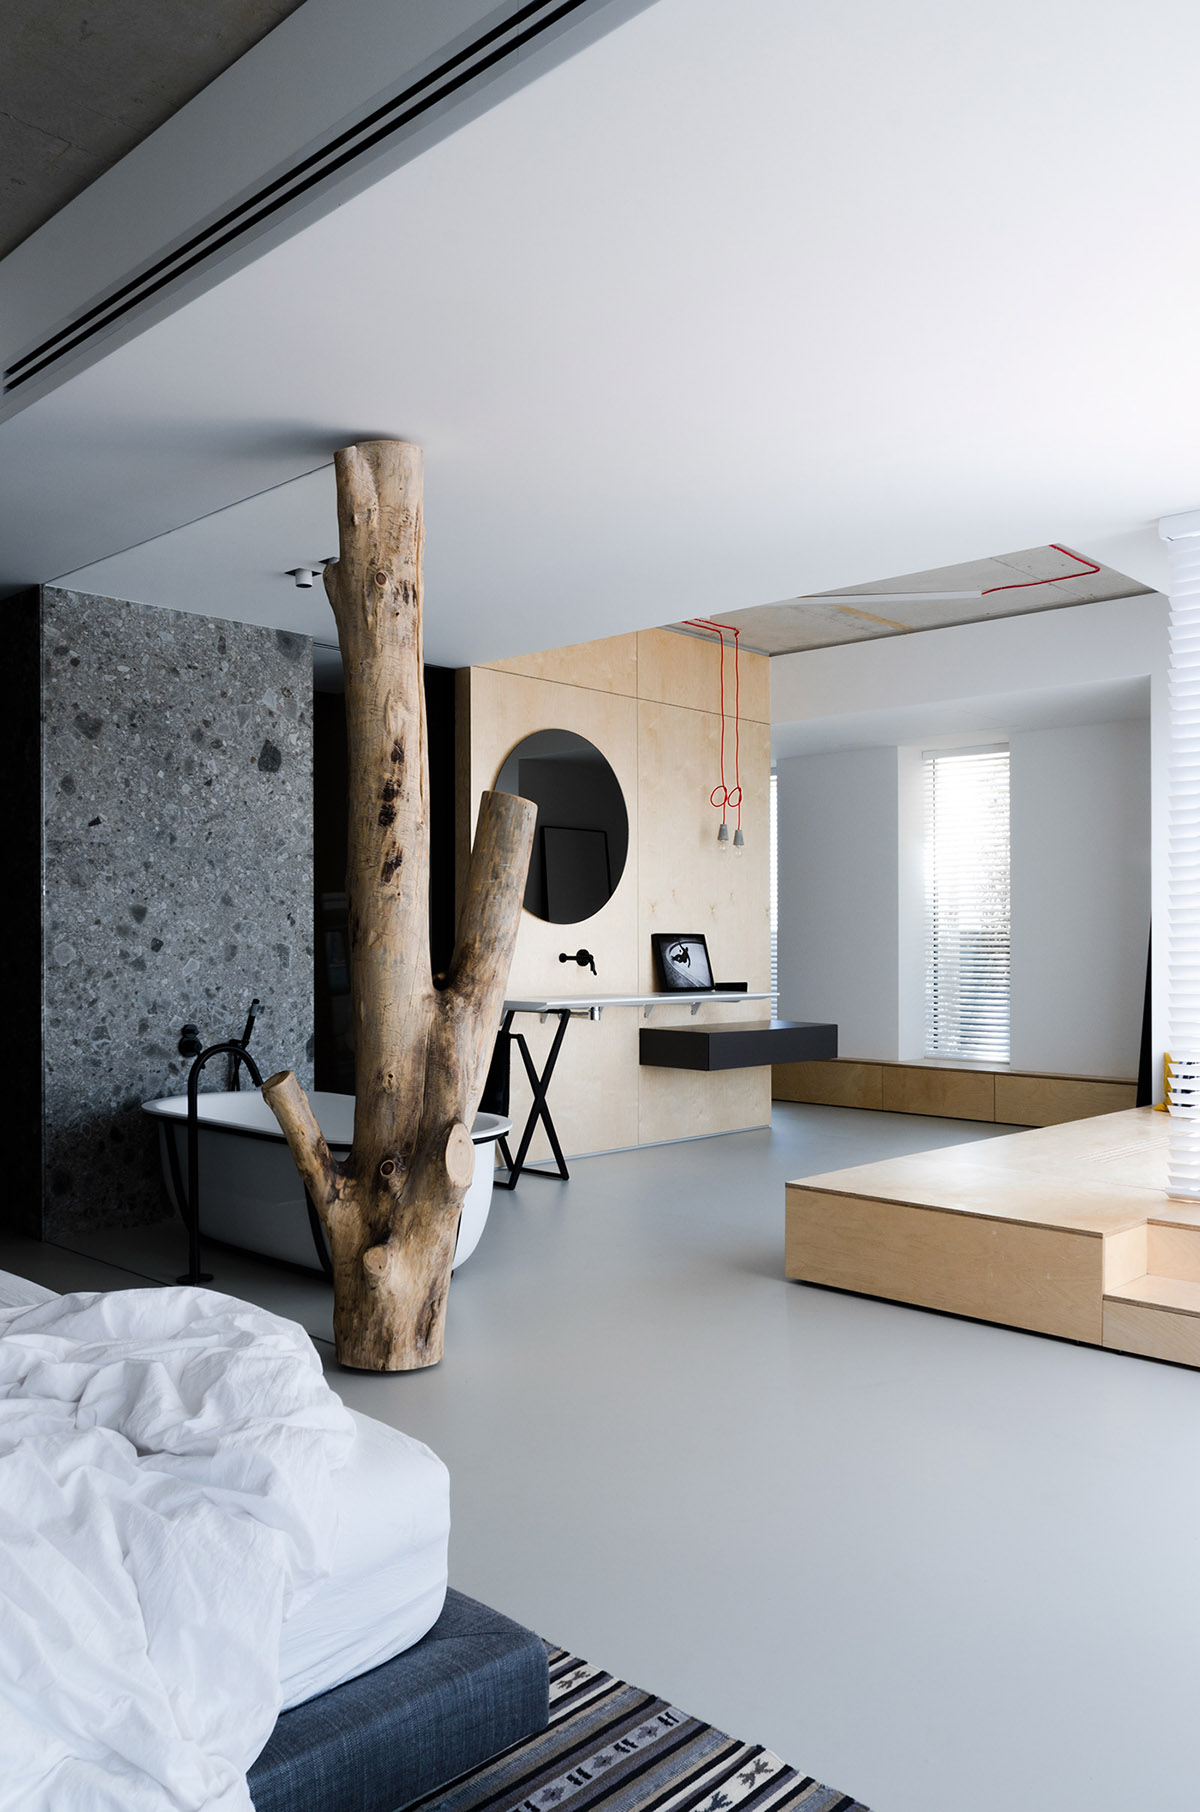 Light and Laid Back Industrial Style Interior images 14